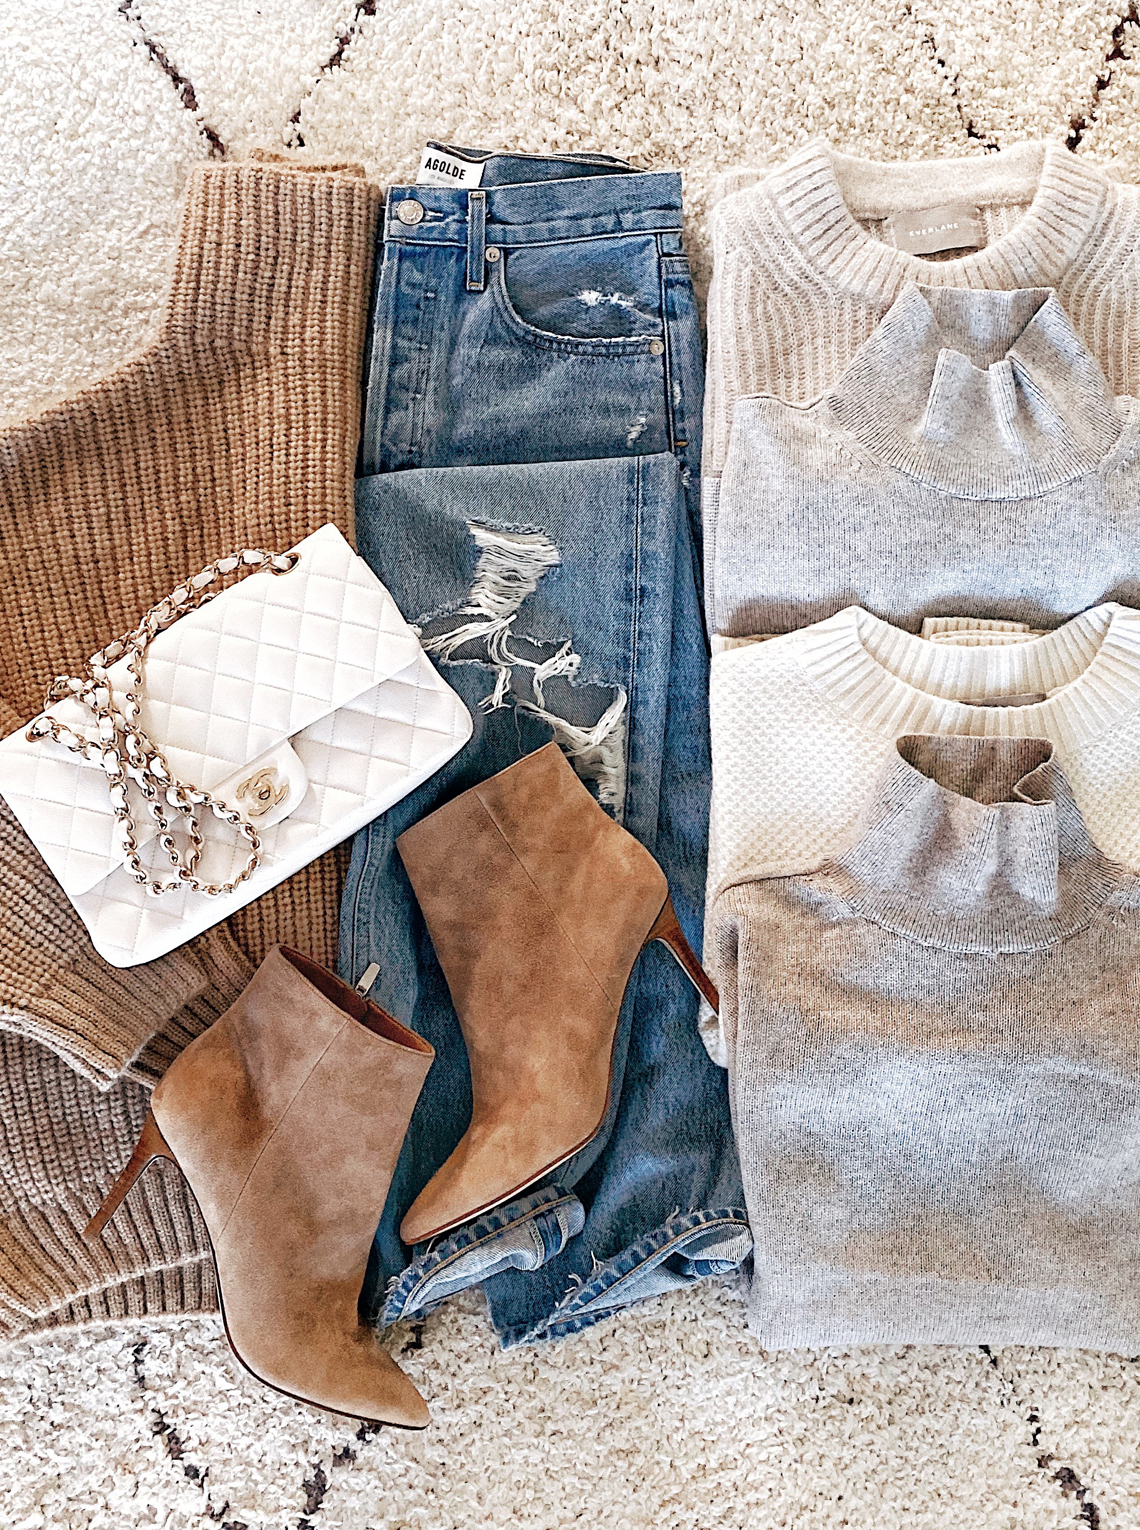 Fashion Jackson Fall Sweaters Ripped Jeans White Chanel Handbag Tan Suede Booties